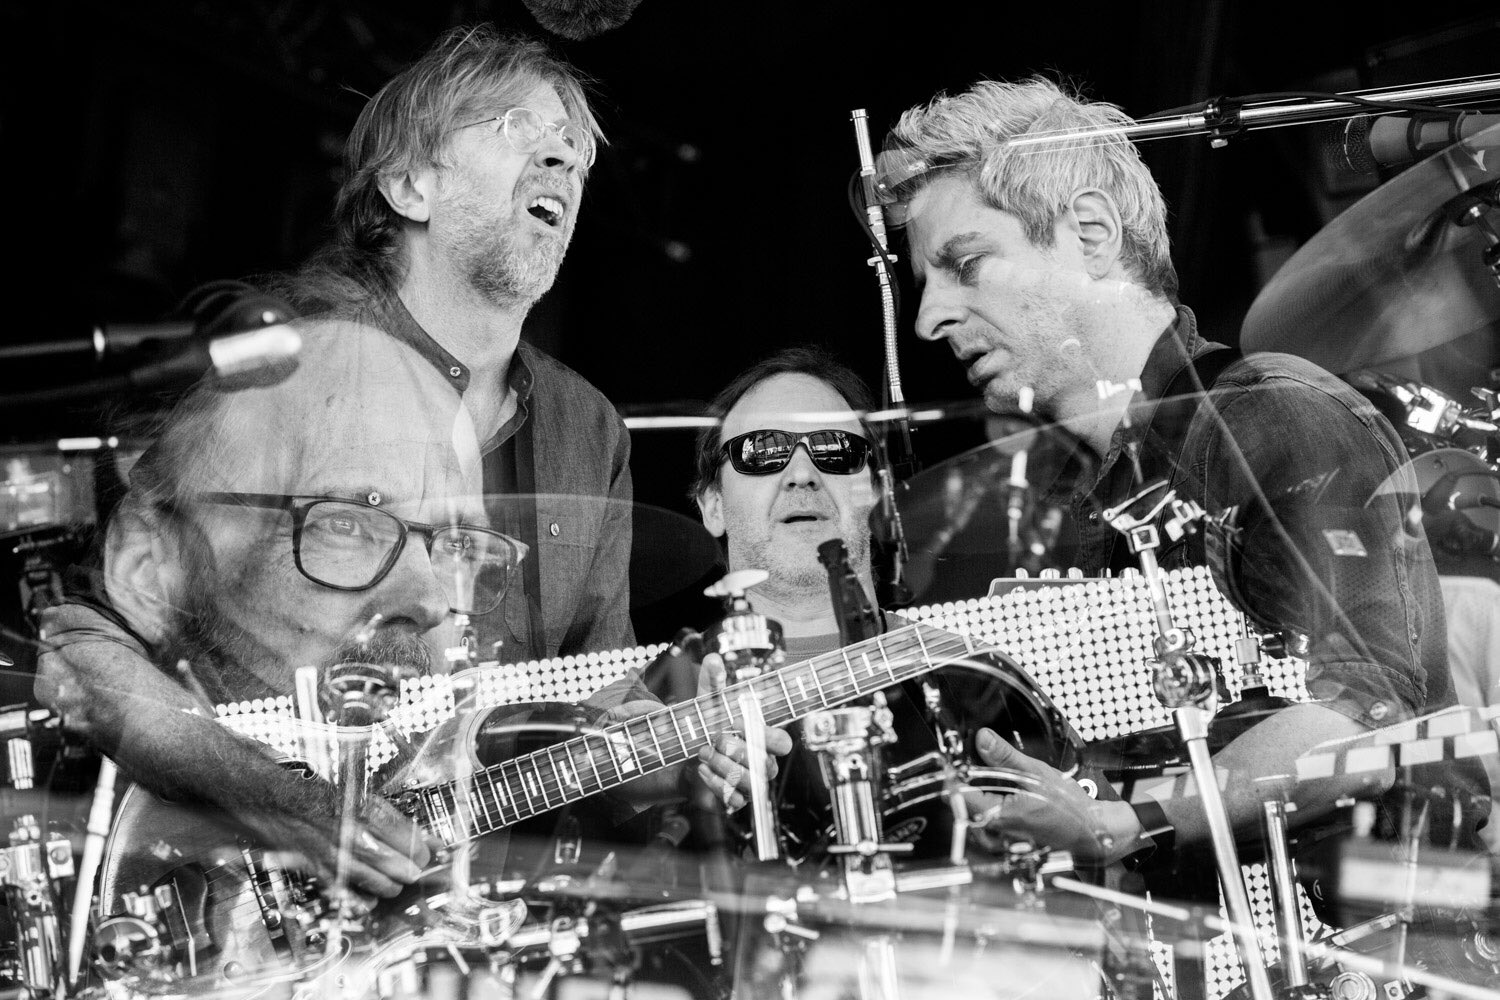 Photo (c) {http://www.phish.com/|Rene Huemer}